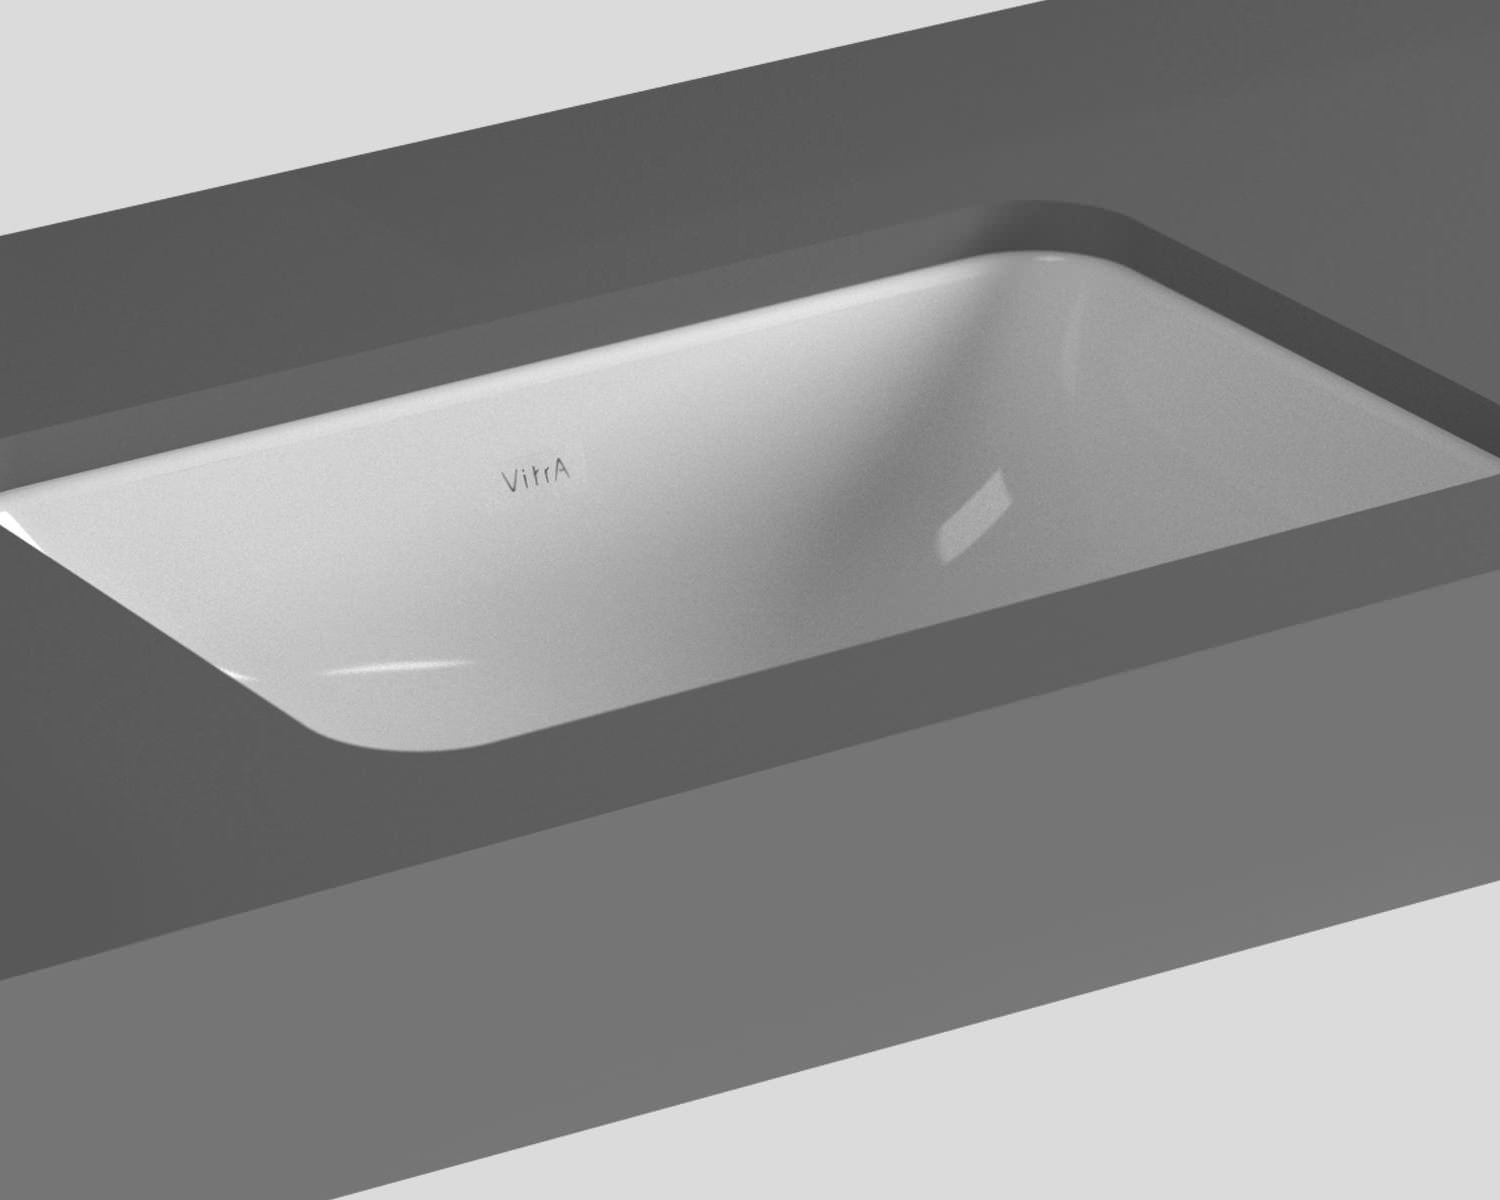 Commercial Basin : VitrA S20 Commercial 38cm Under-Counter Basin Square - 5473 Image